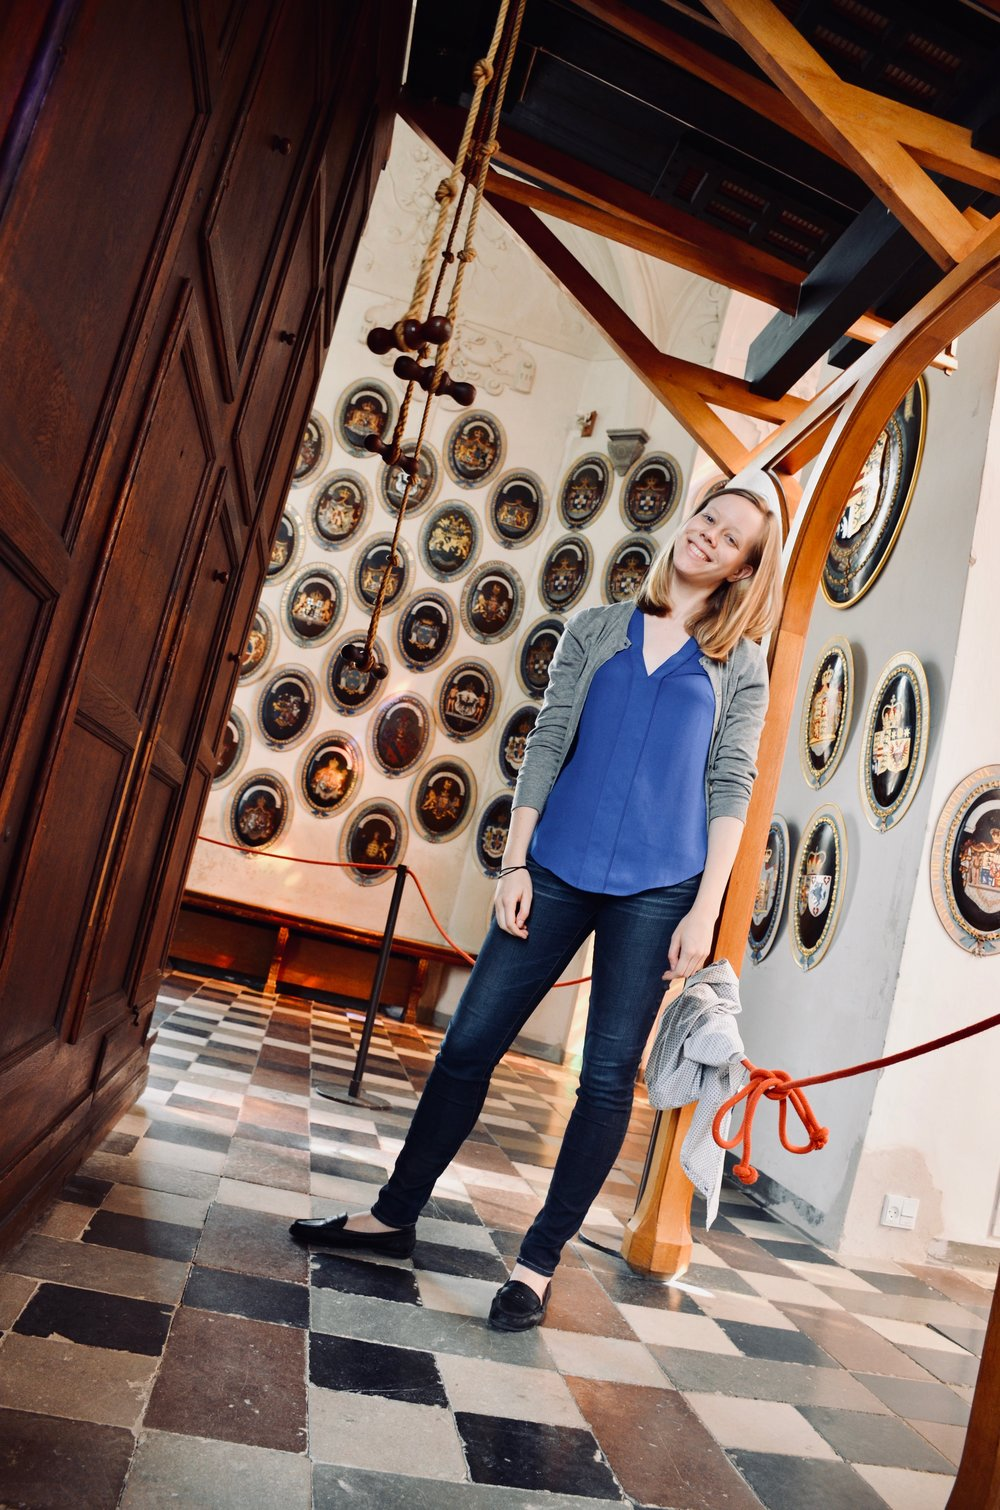 Laura takes a break from pumping the bellows, 1610 Compenius organ, Frederiksborg Castle, Hillerød, Denmark.